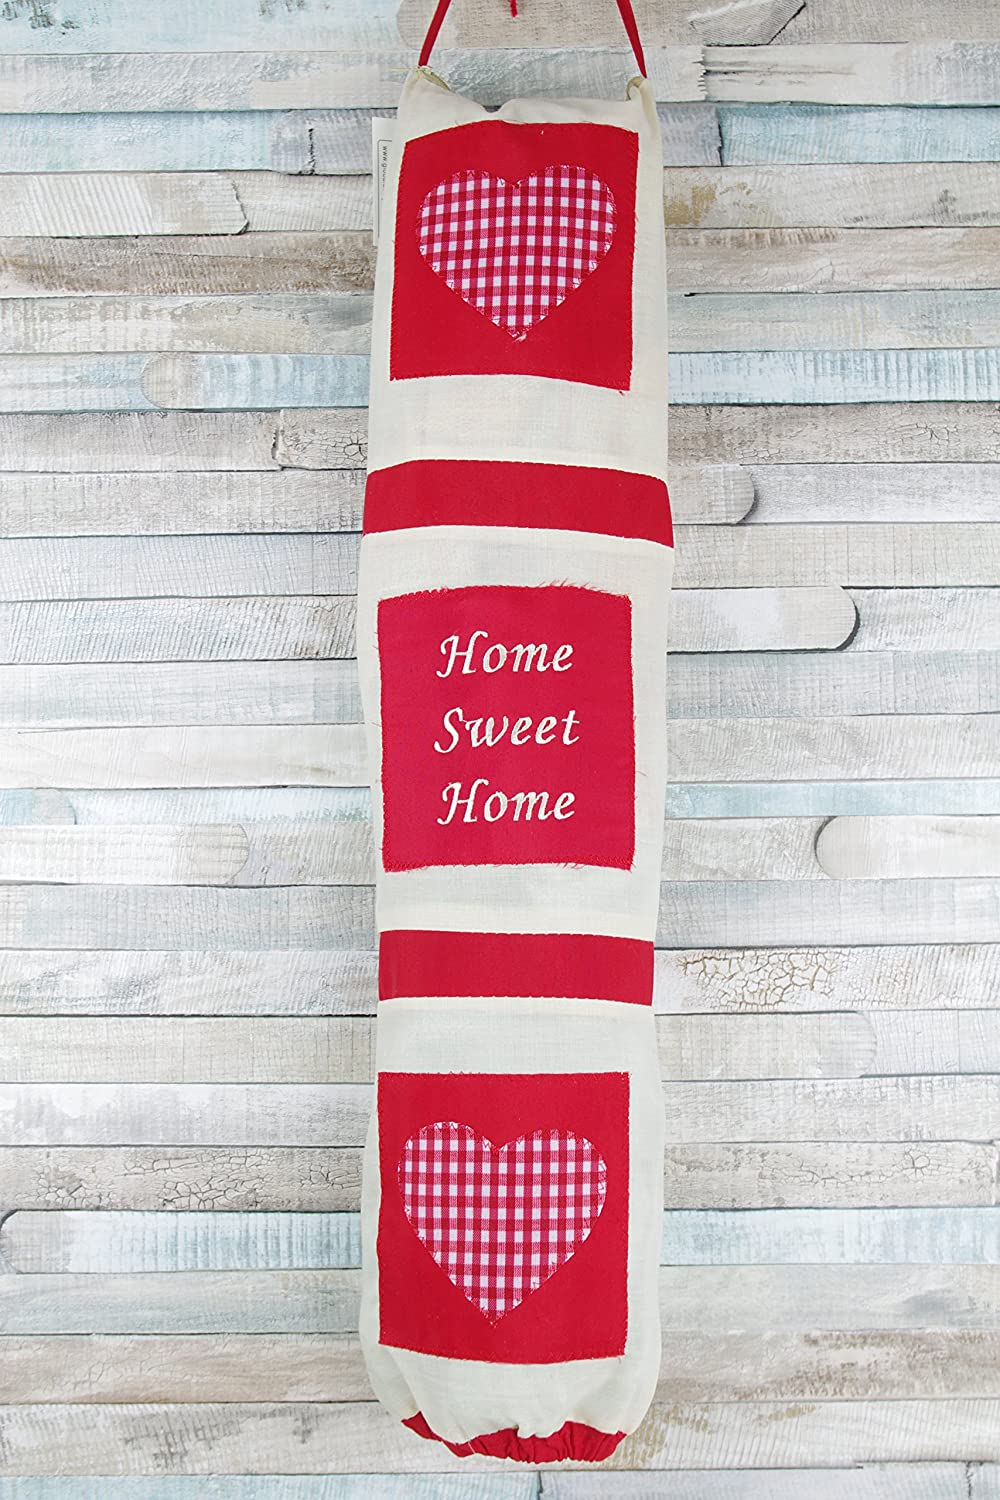 Carrier Bag Holder Bag For Life Holder Home Sweet Home Red & Cream HYK64628 global designs gifts